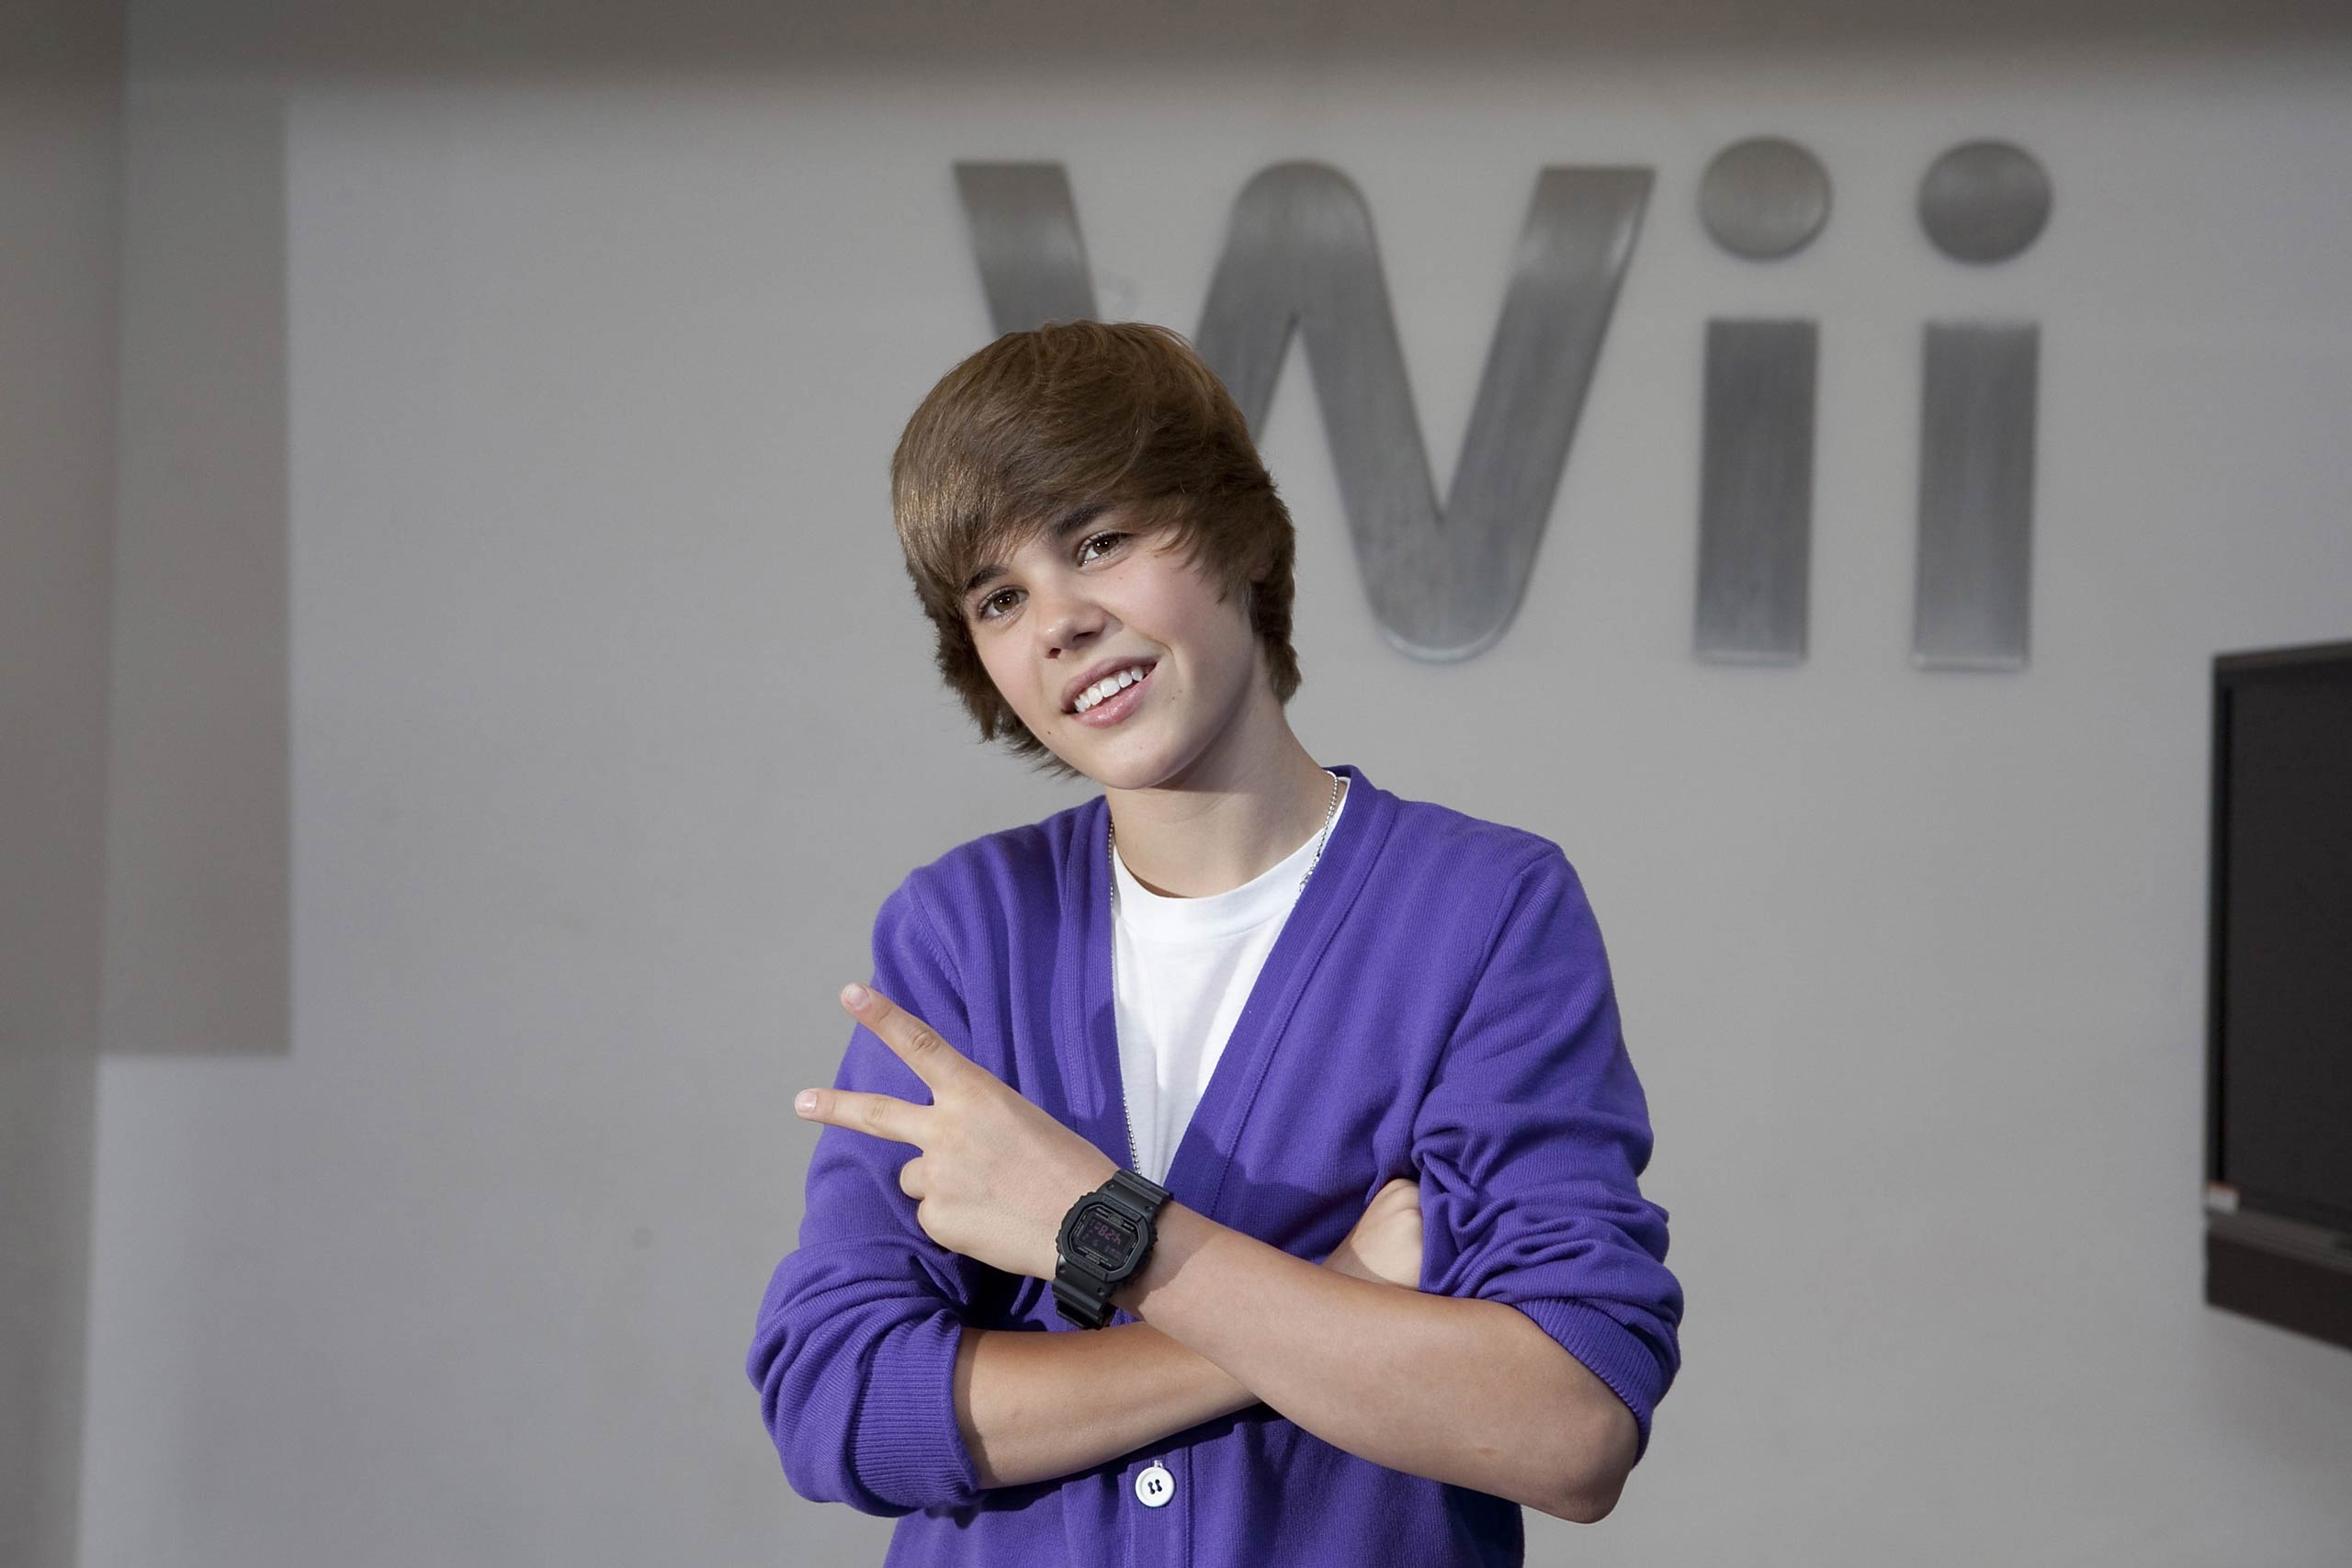 Justin Bieber visits the Nintendo World Store in 2009.